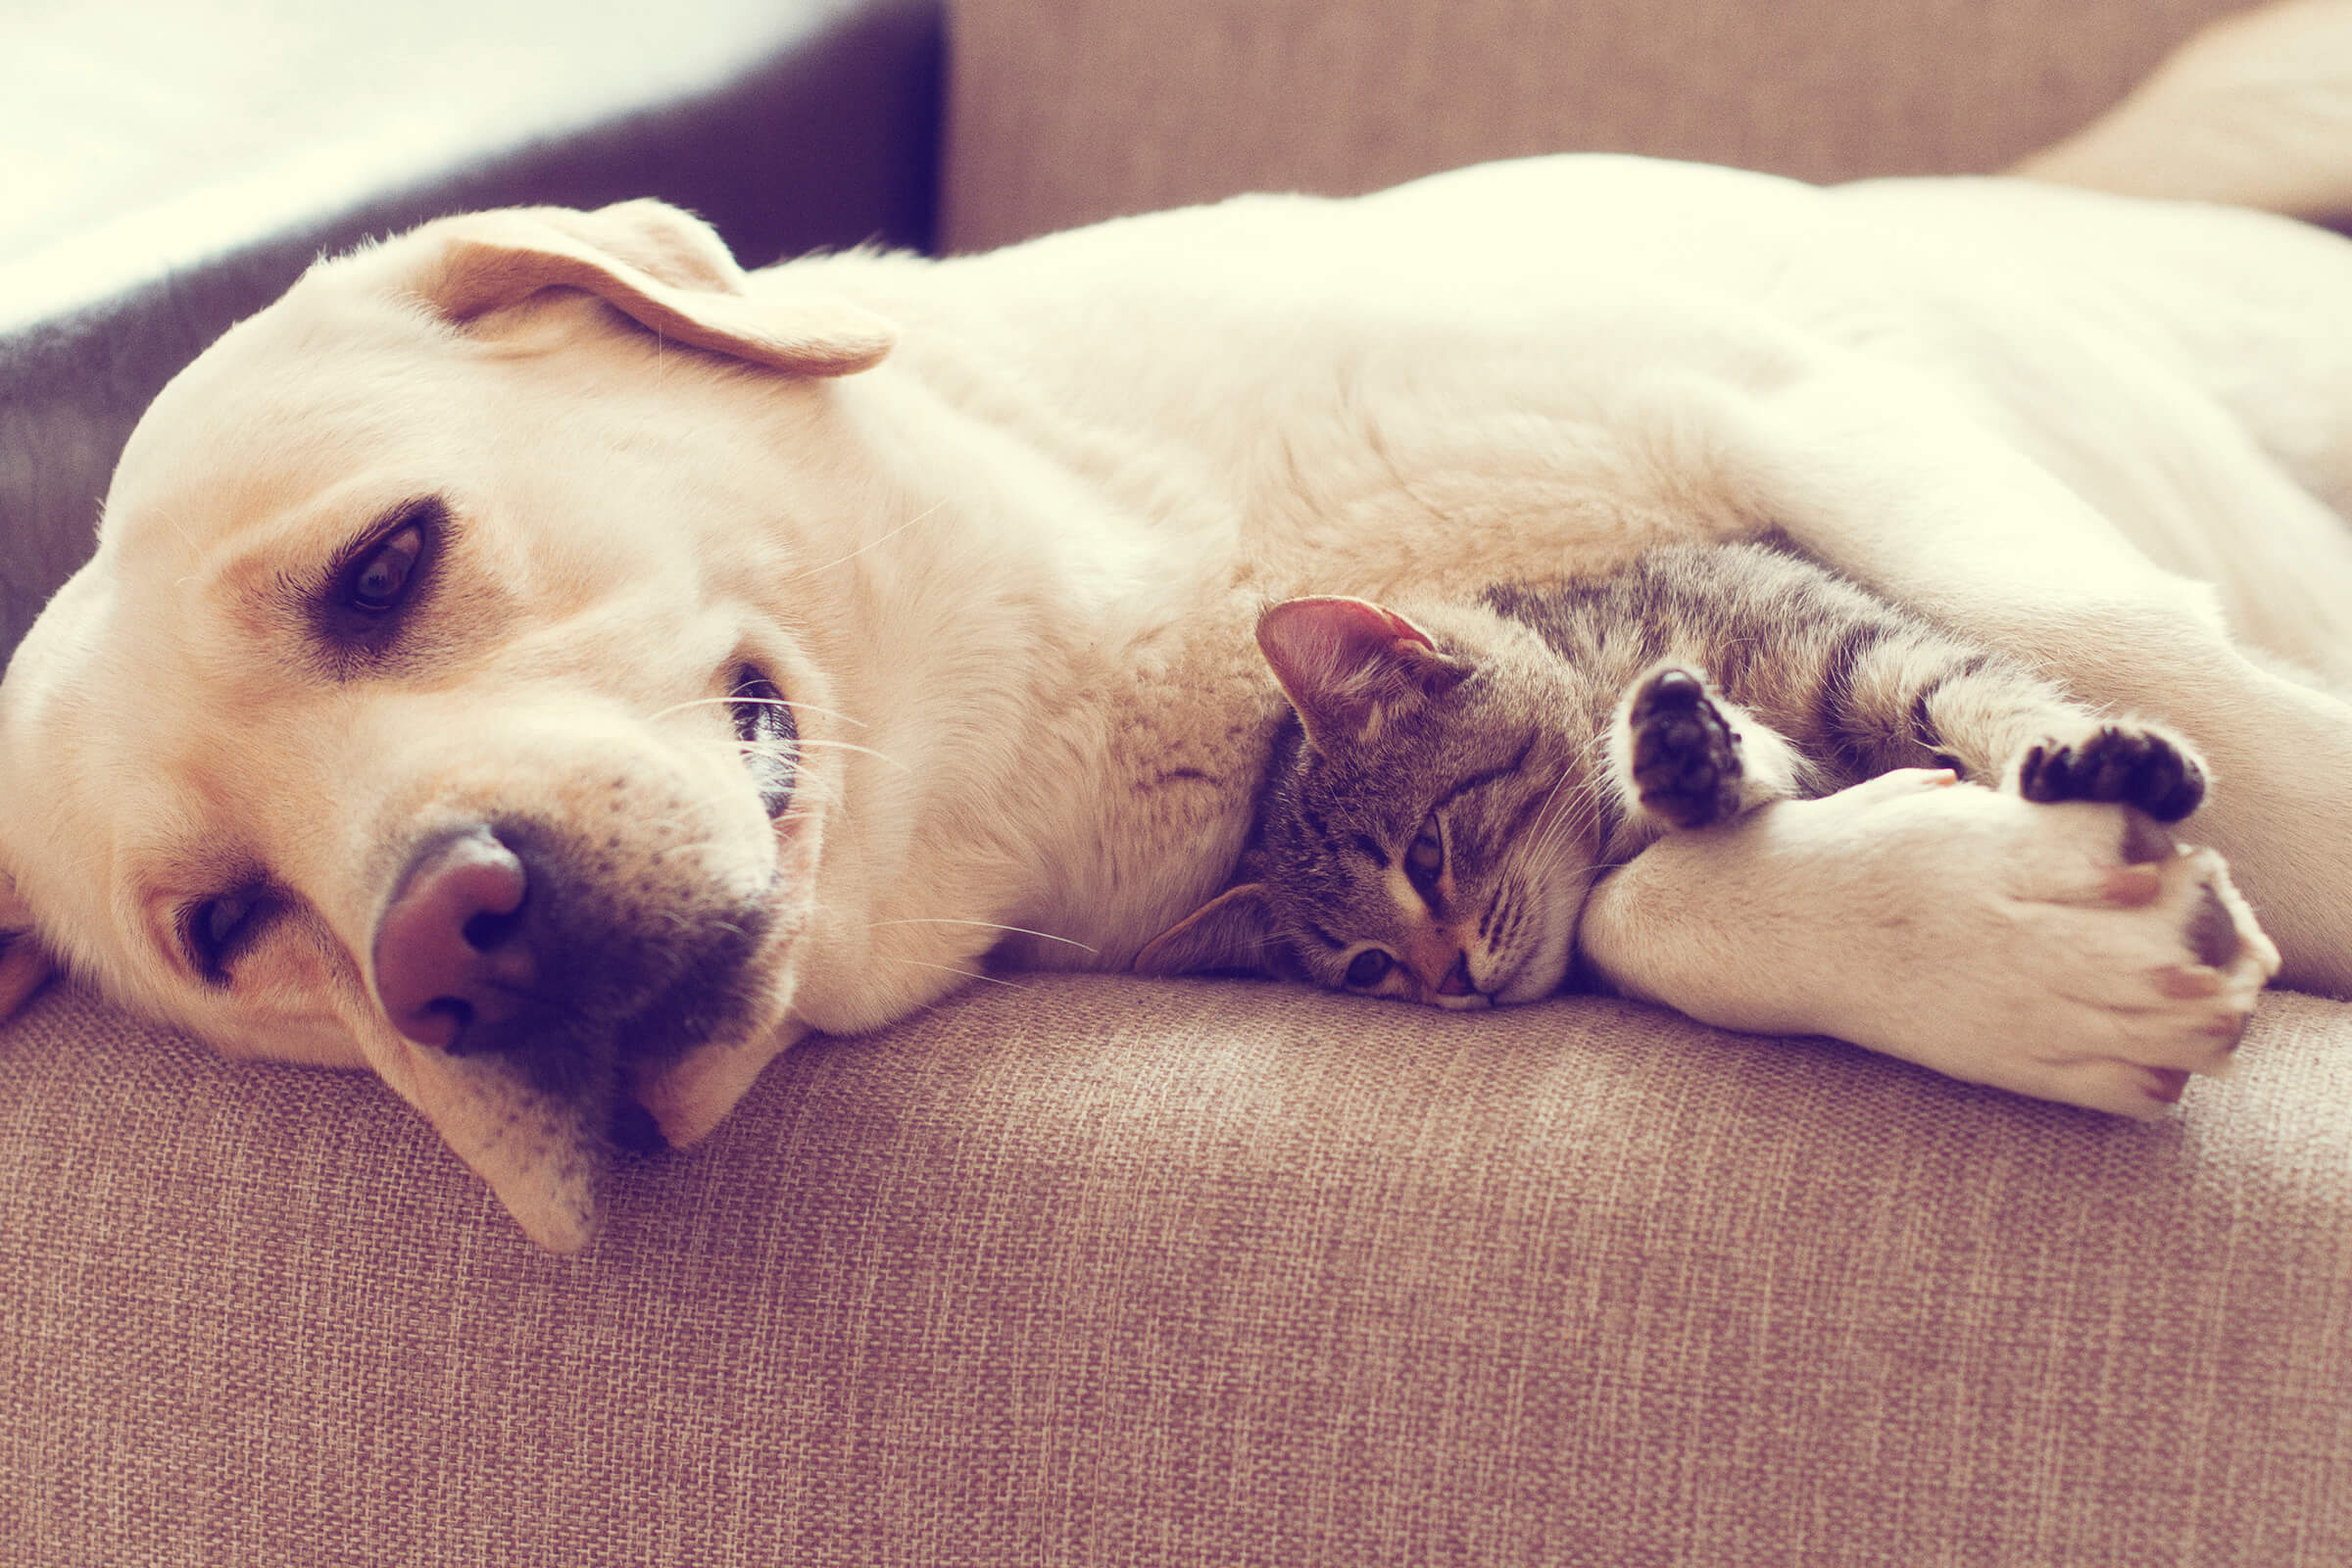 We are a Pet-Friendly Community Here at the Colony House in Murfreesboro, Tennessee